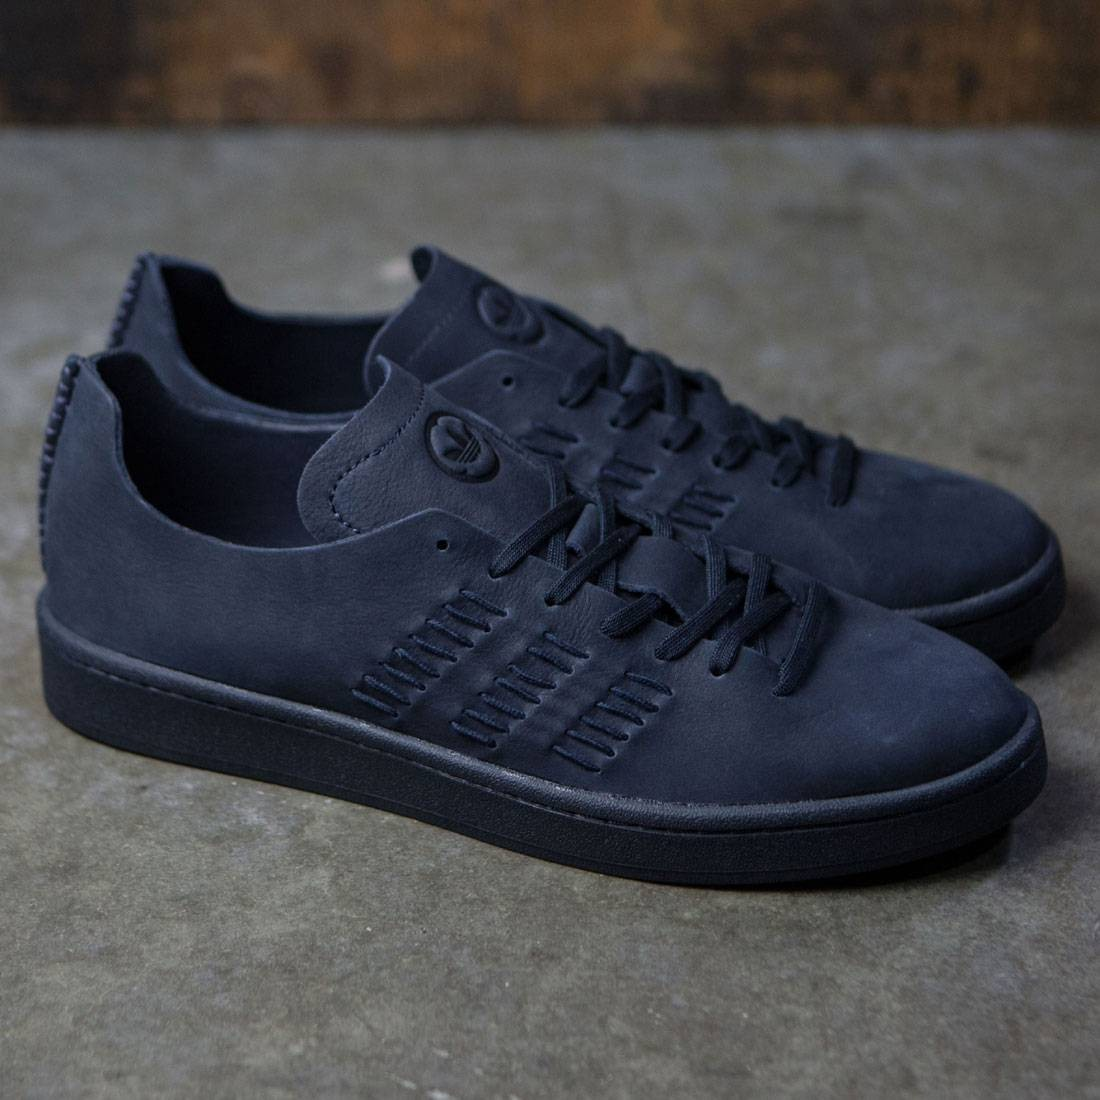 real de1df adidas wings horns x adidas de1df campus navy 52332 ee1e10